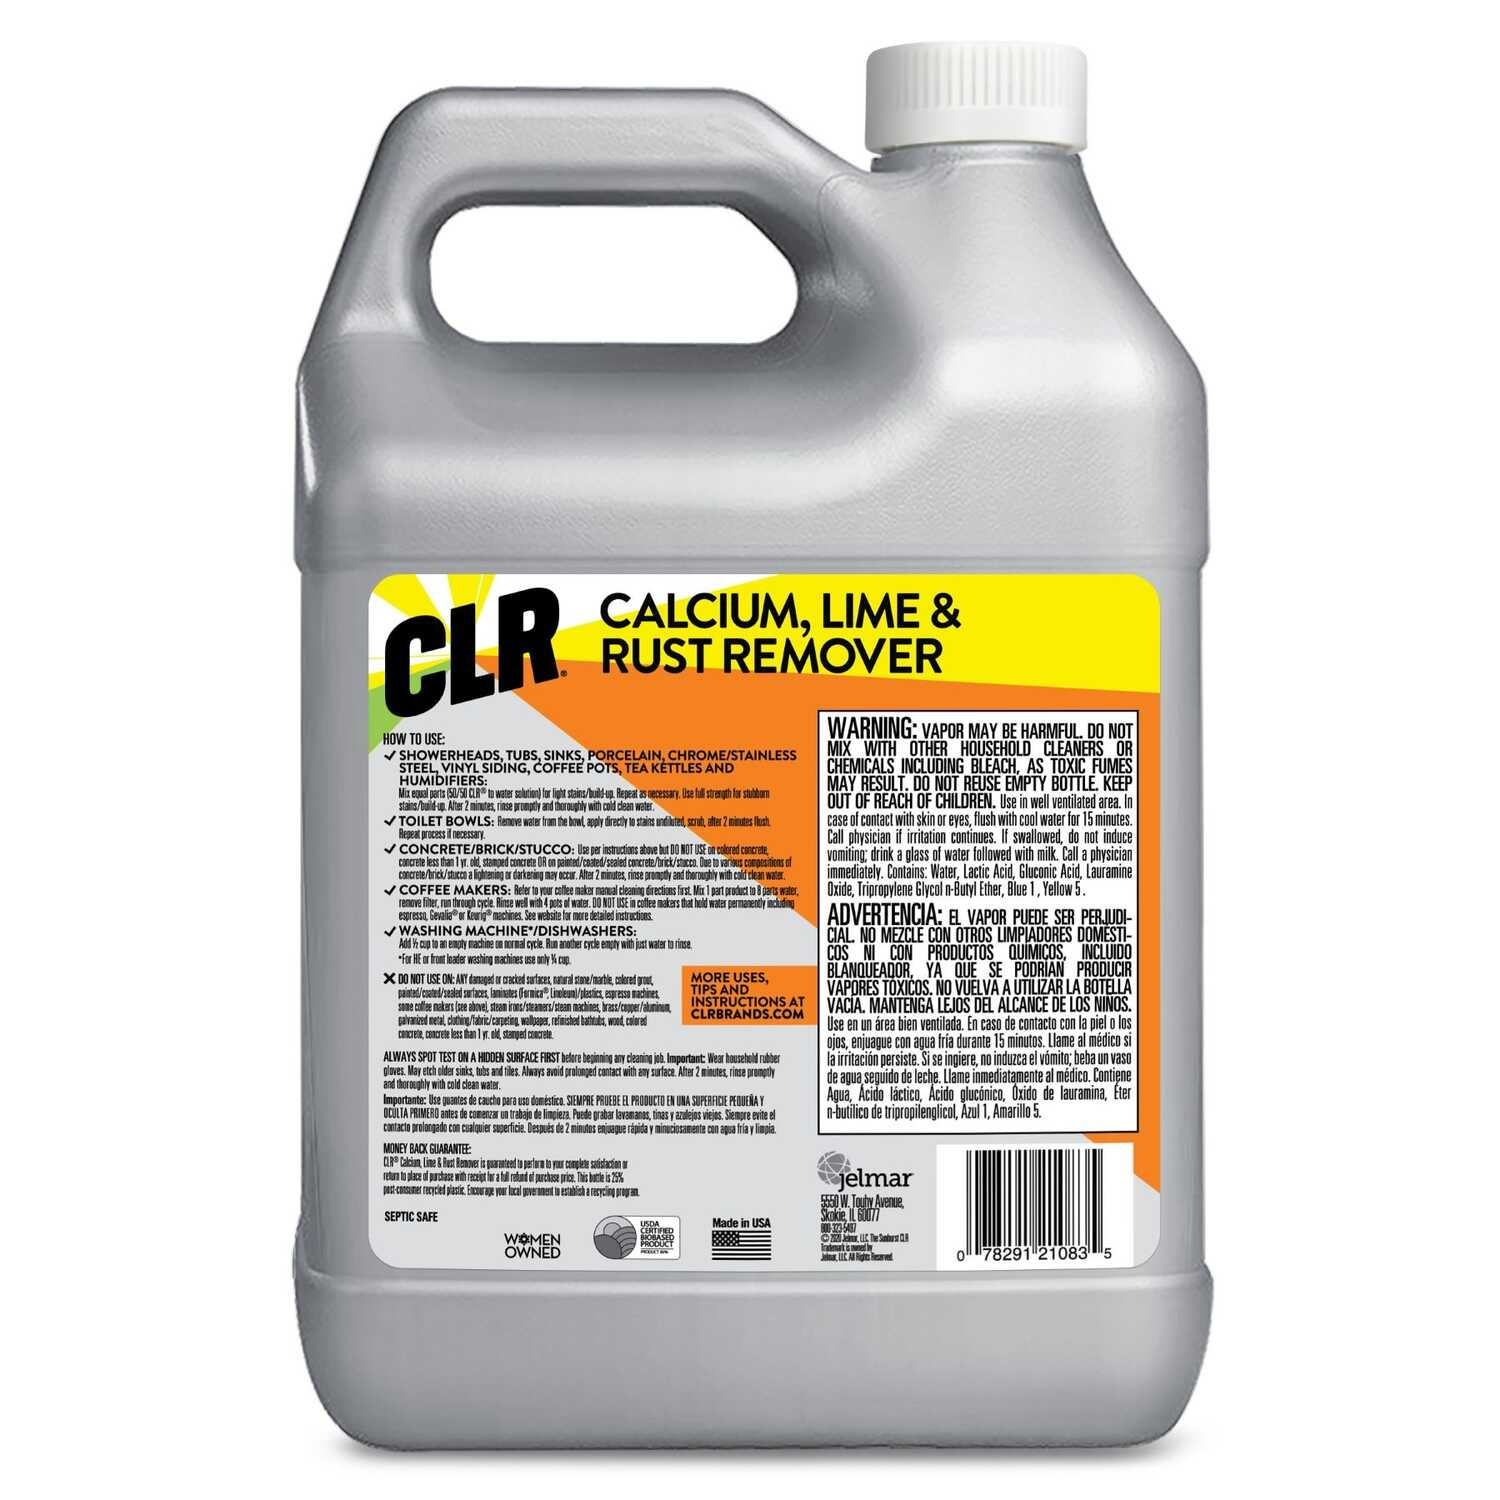 CLR 128 ounce Calcium, Lime and Rust Remover - Ace Hardware